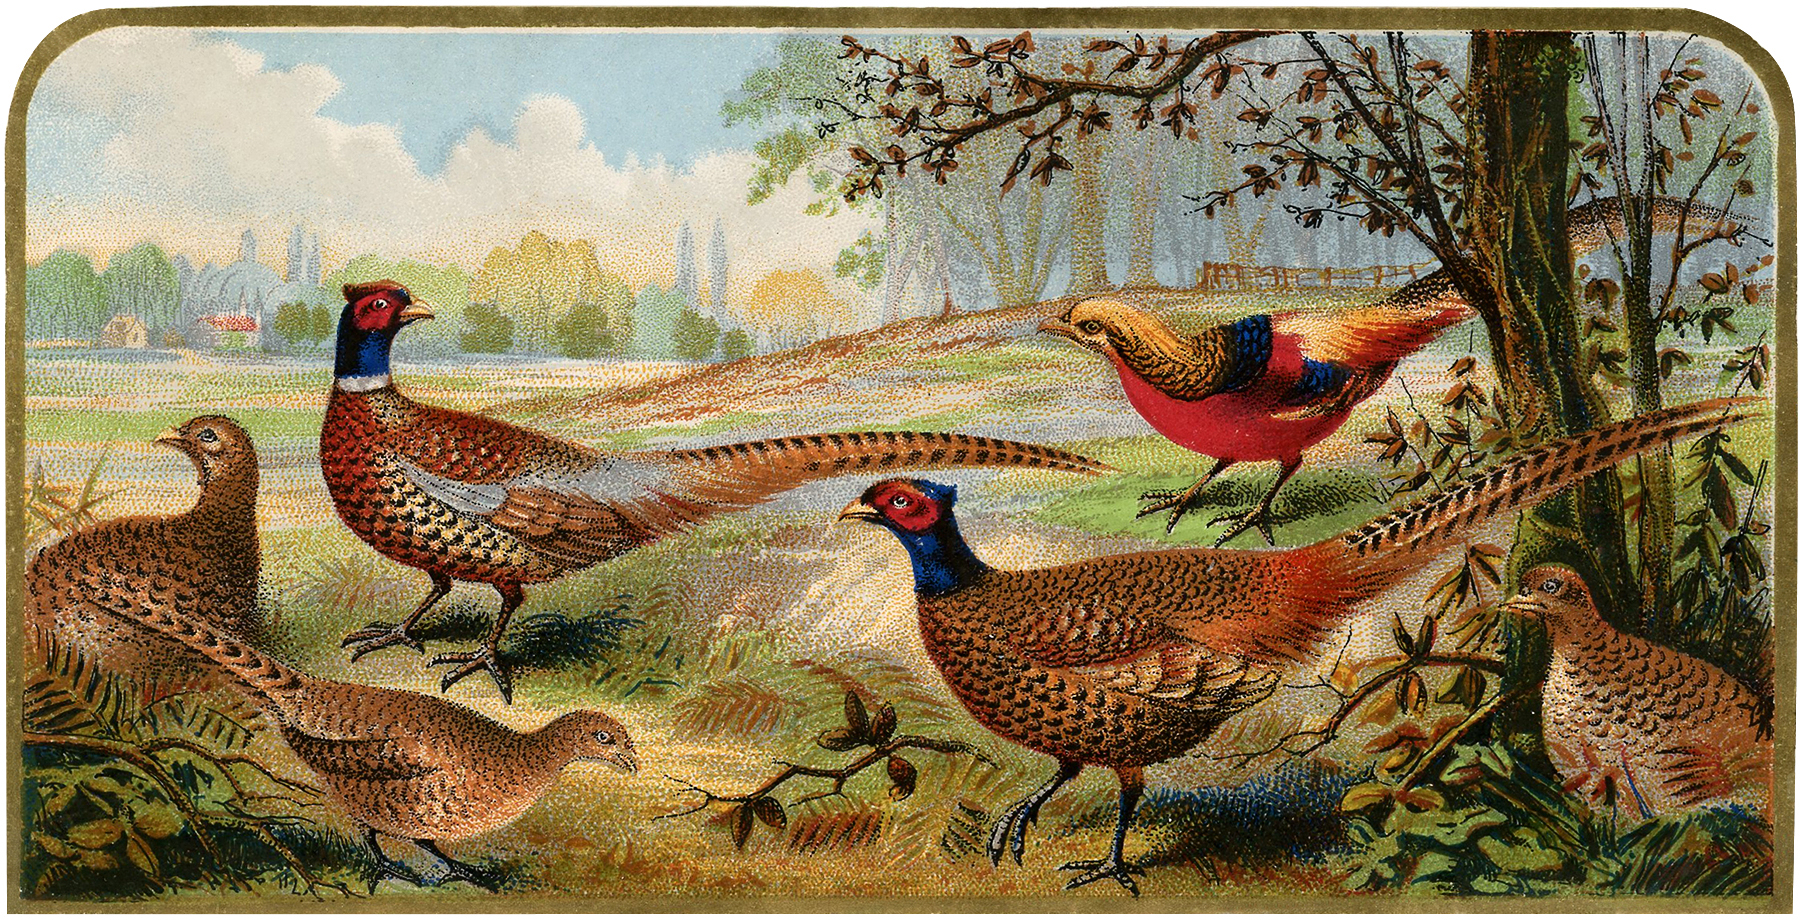 Vintage Pheasants Image Nice For Fall Projects The